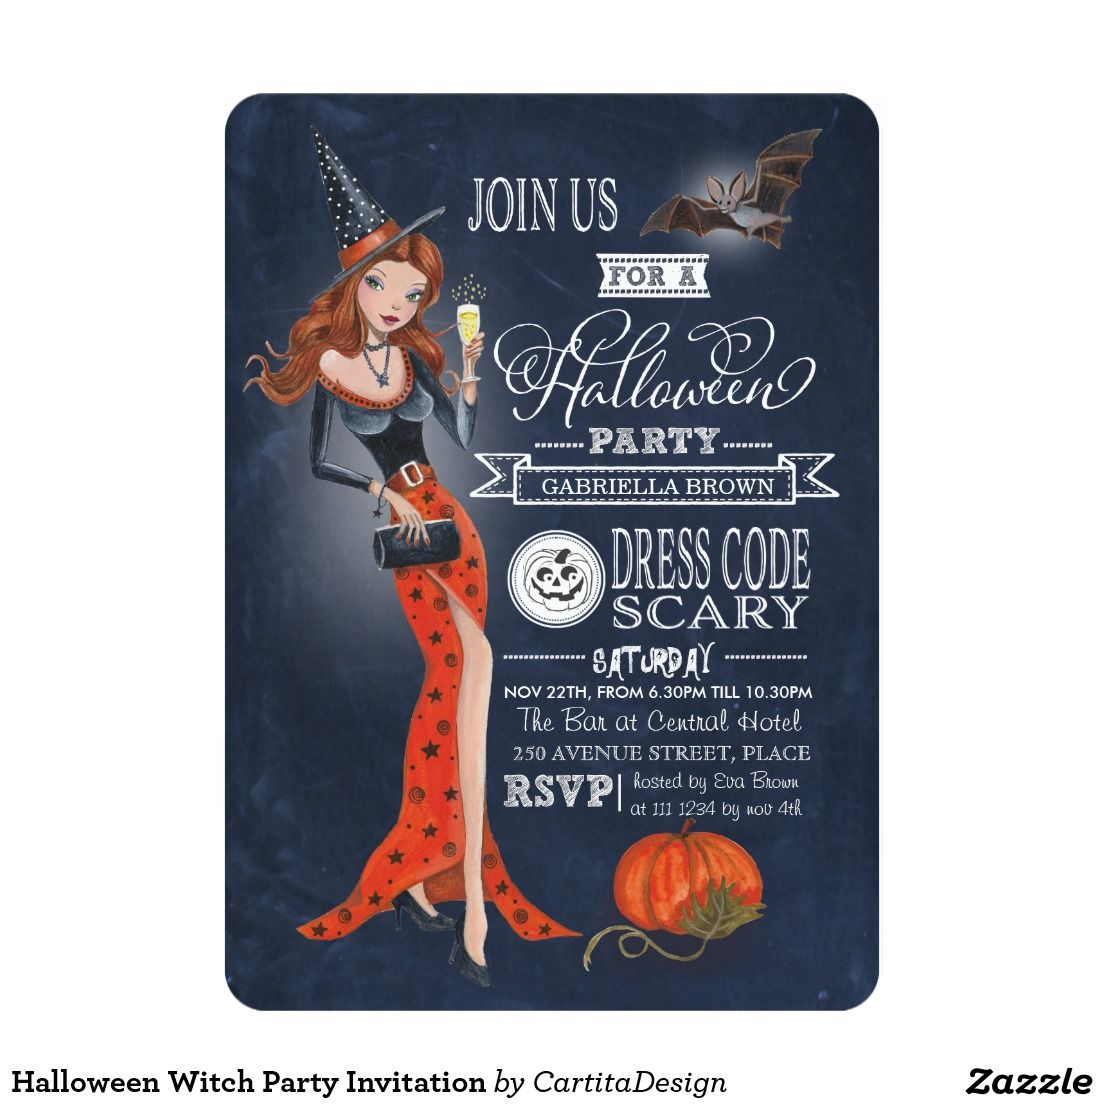 Halloween Witch Party Invitation | Witch party, Party invitations ...